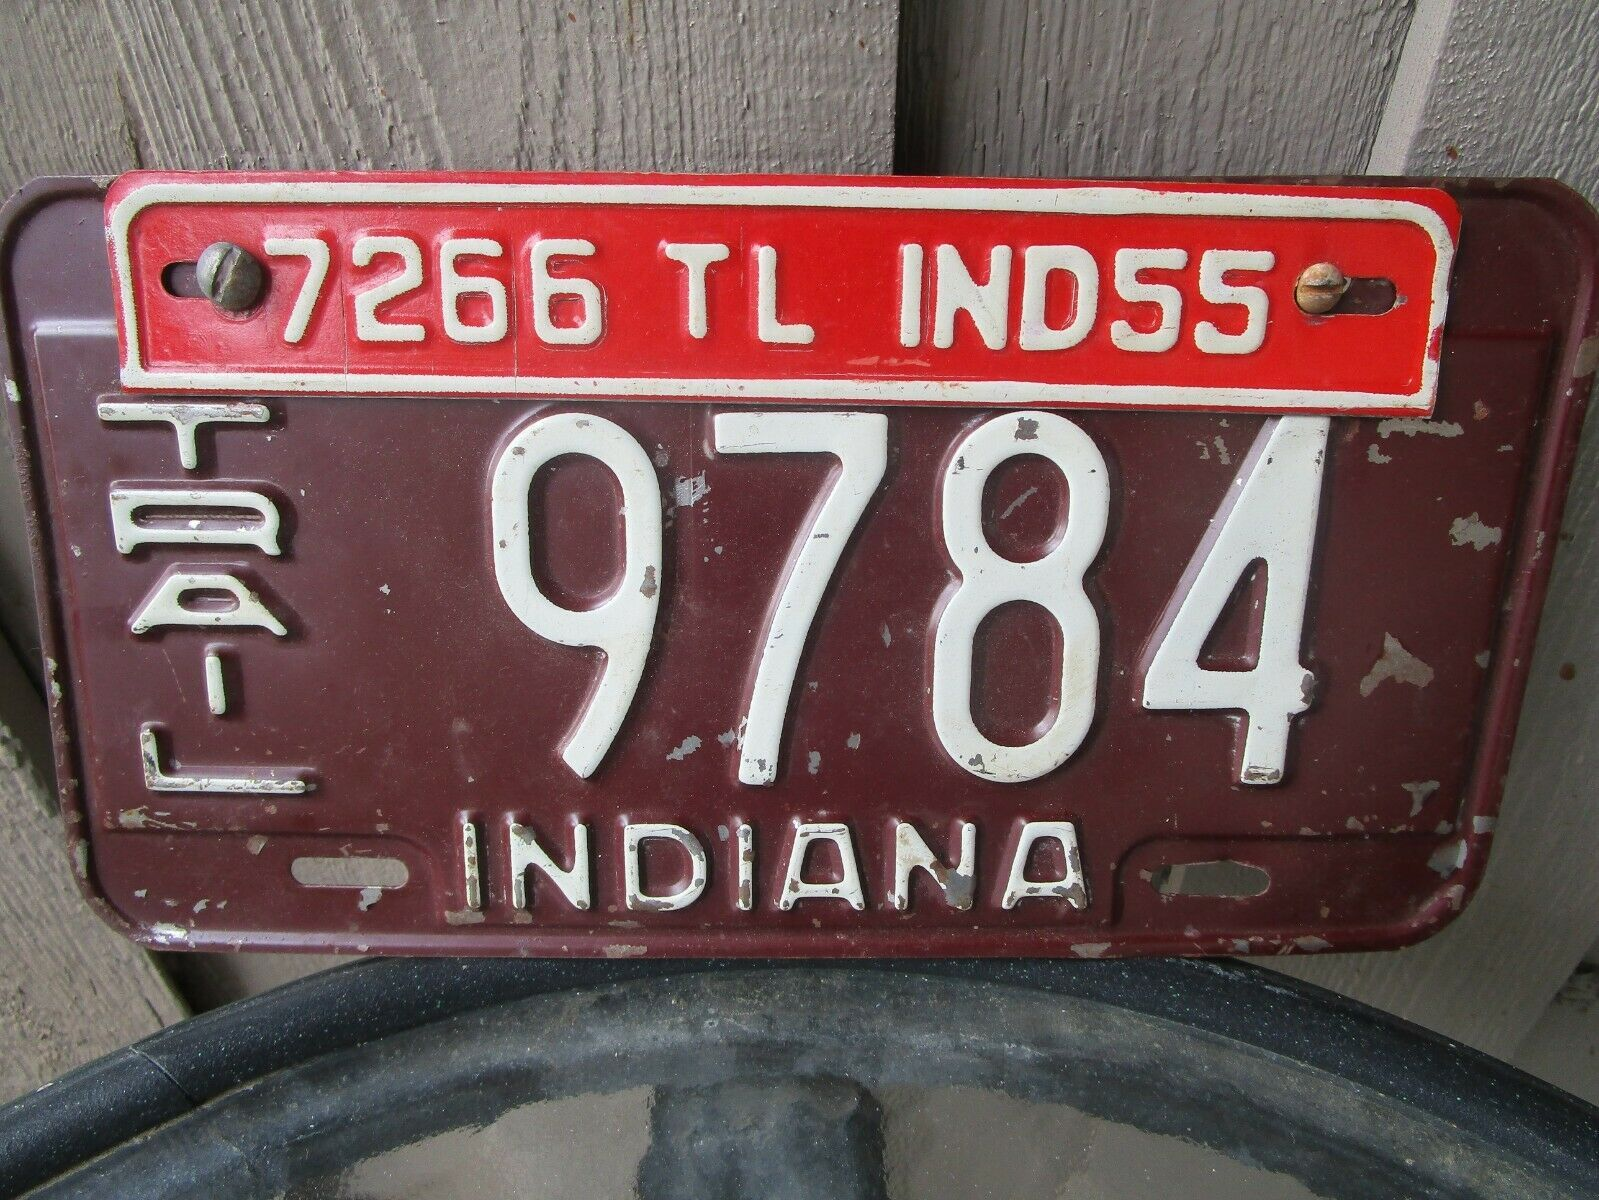 Vintage 1954 Indiana Trailer License Plate w/ 55 Tag 9784 7266 Airstream Shasta